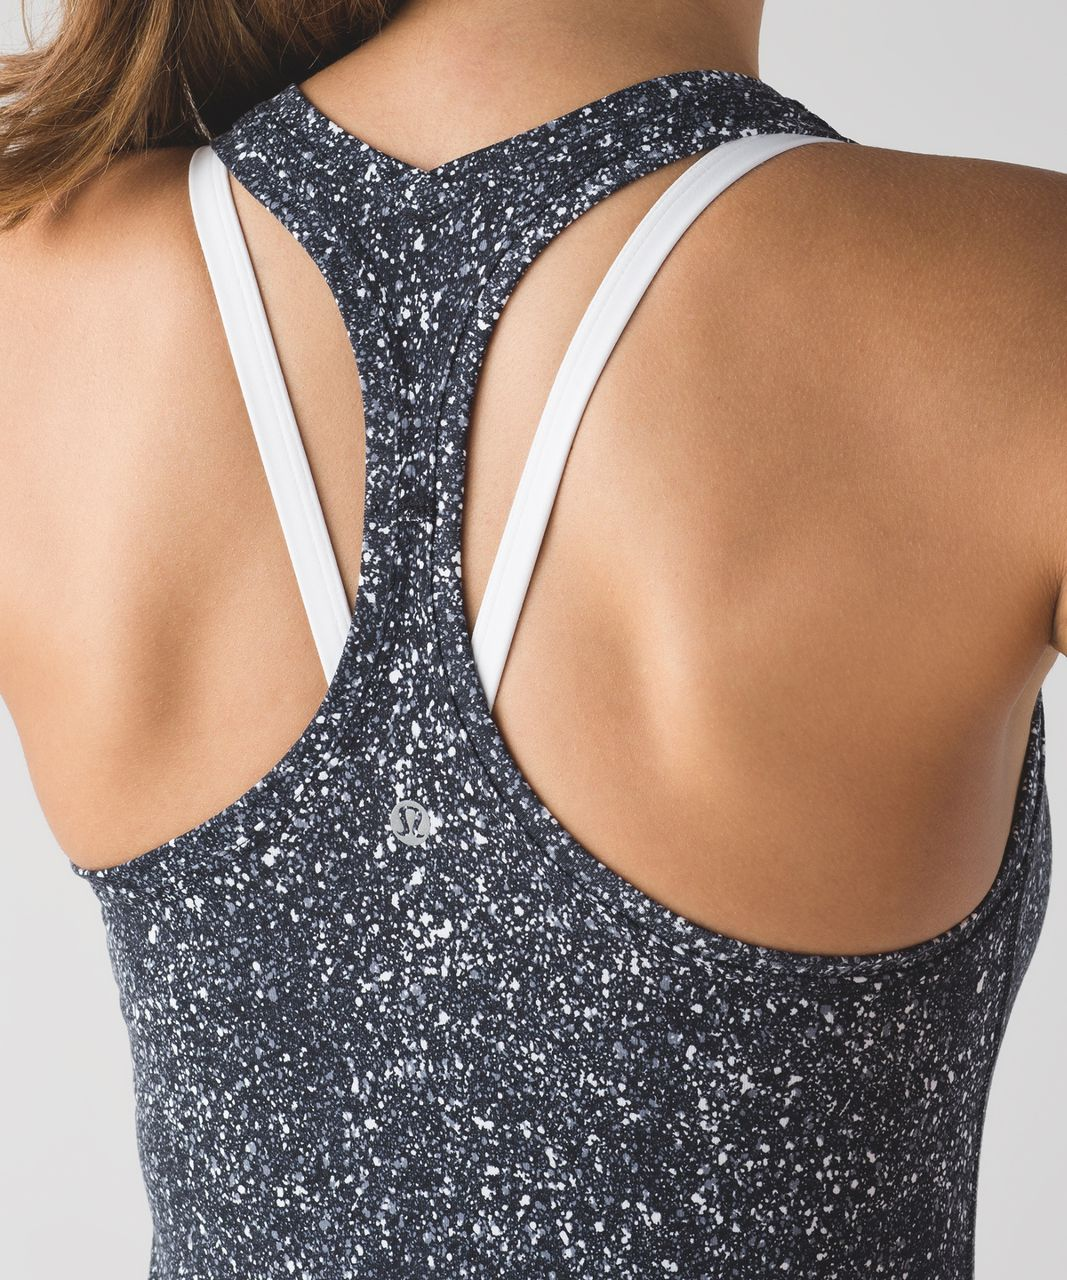 Lululemon Cool Racerback II - Mini Splatter White Black